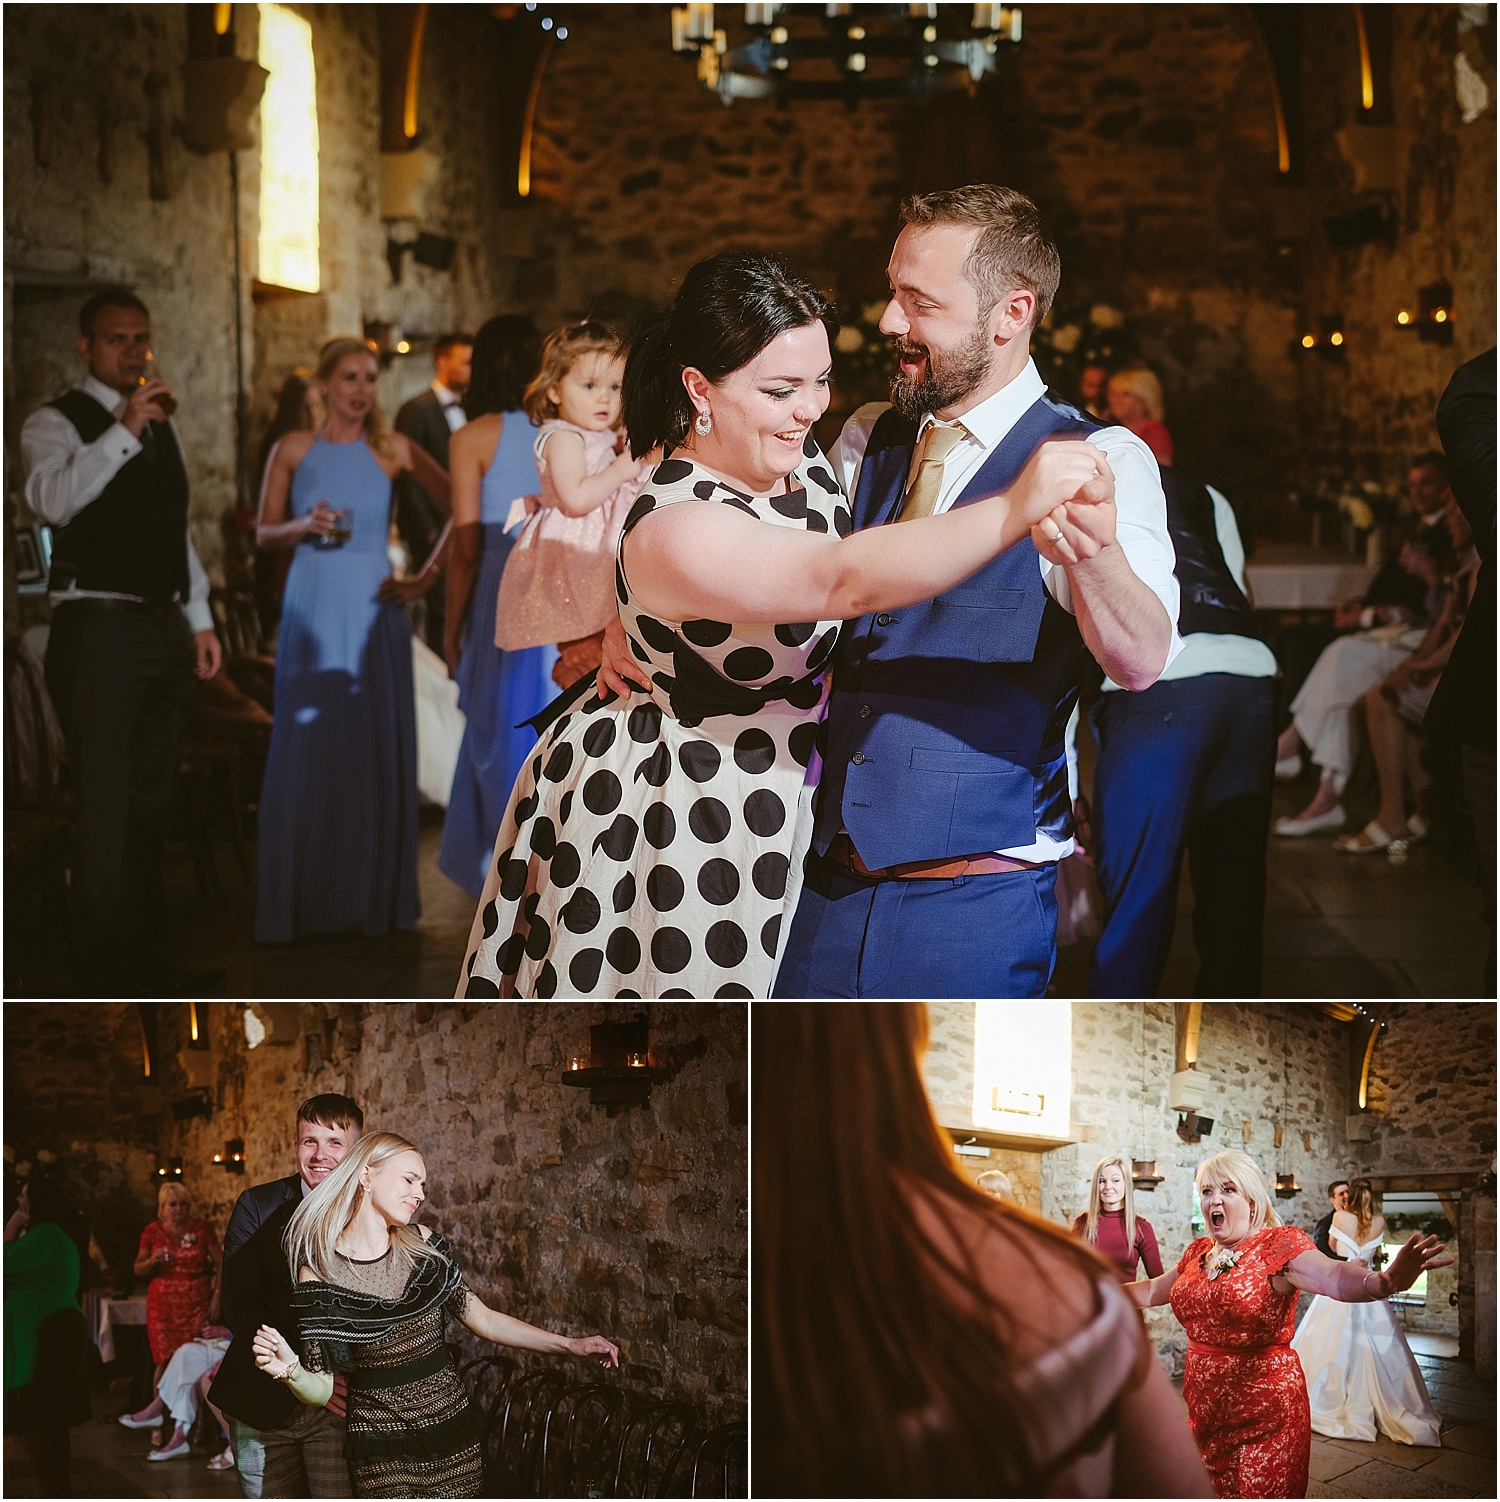 Healey Barn wedding photography - Monika and Daniel_0113.jpg